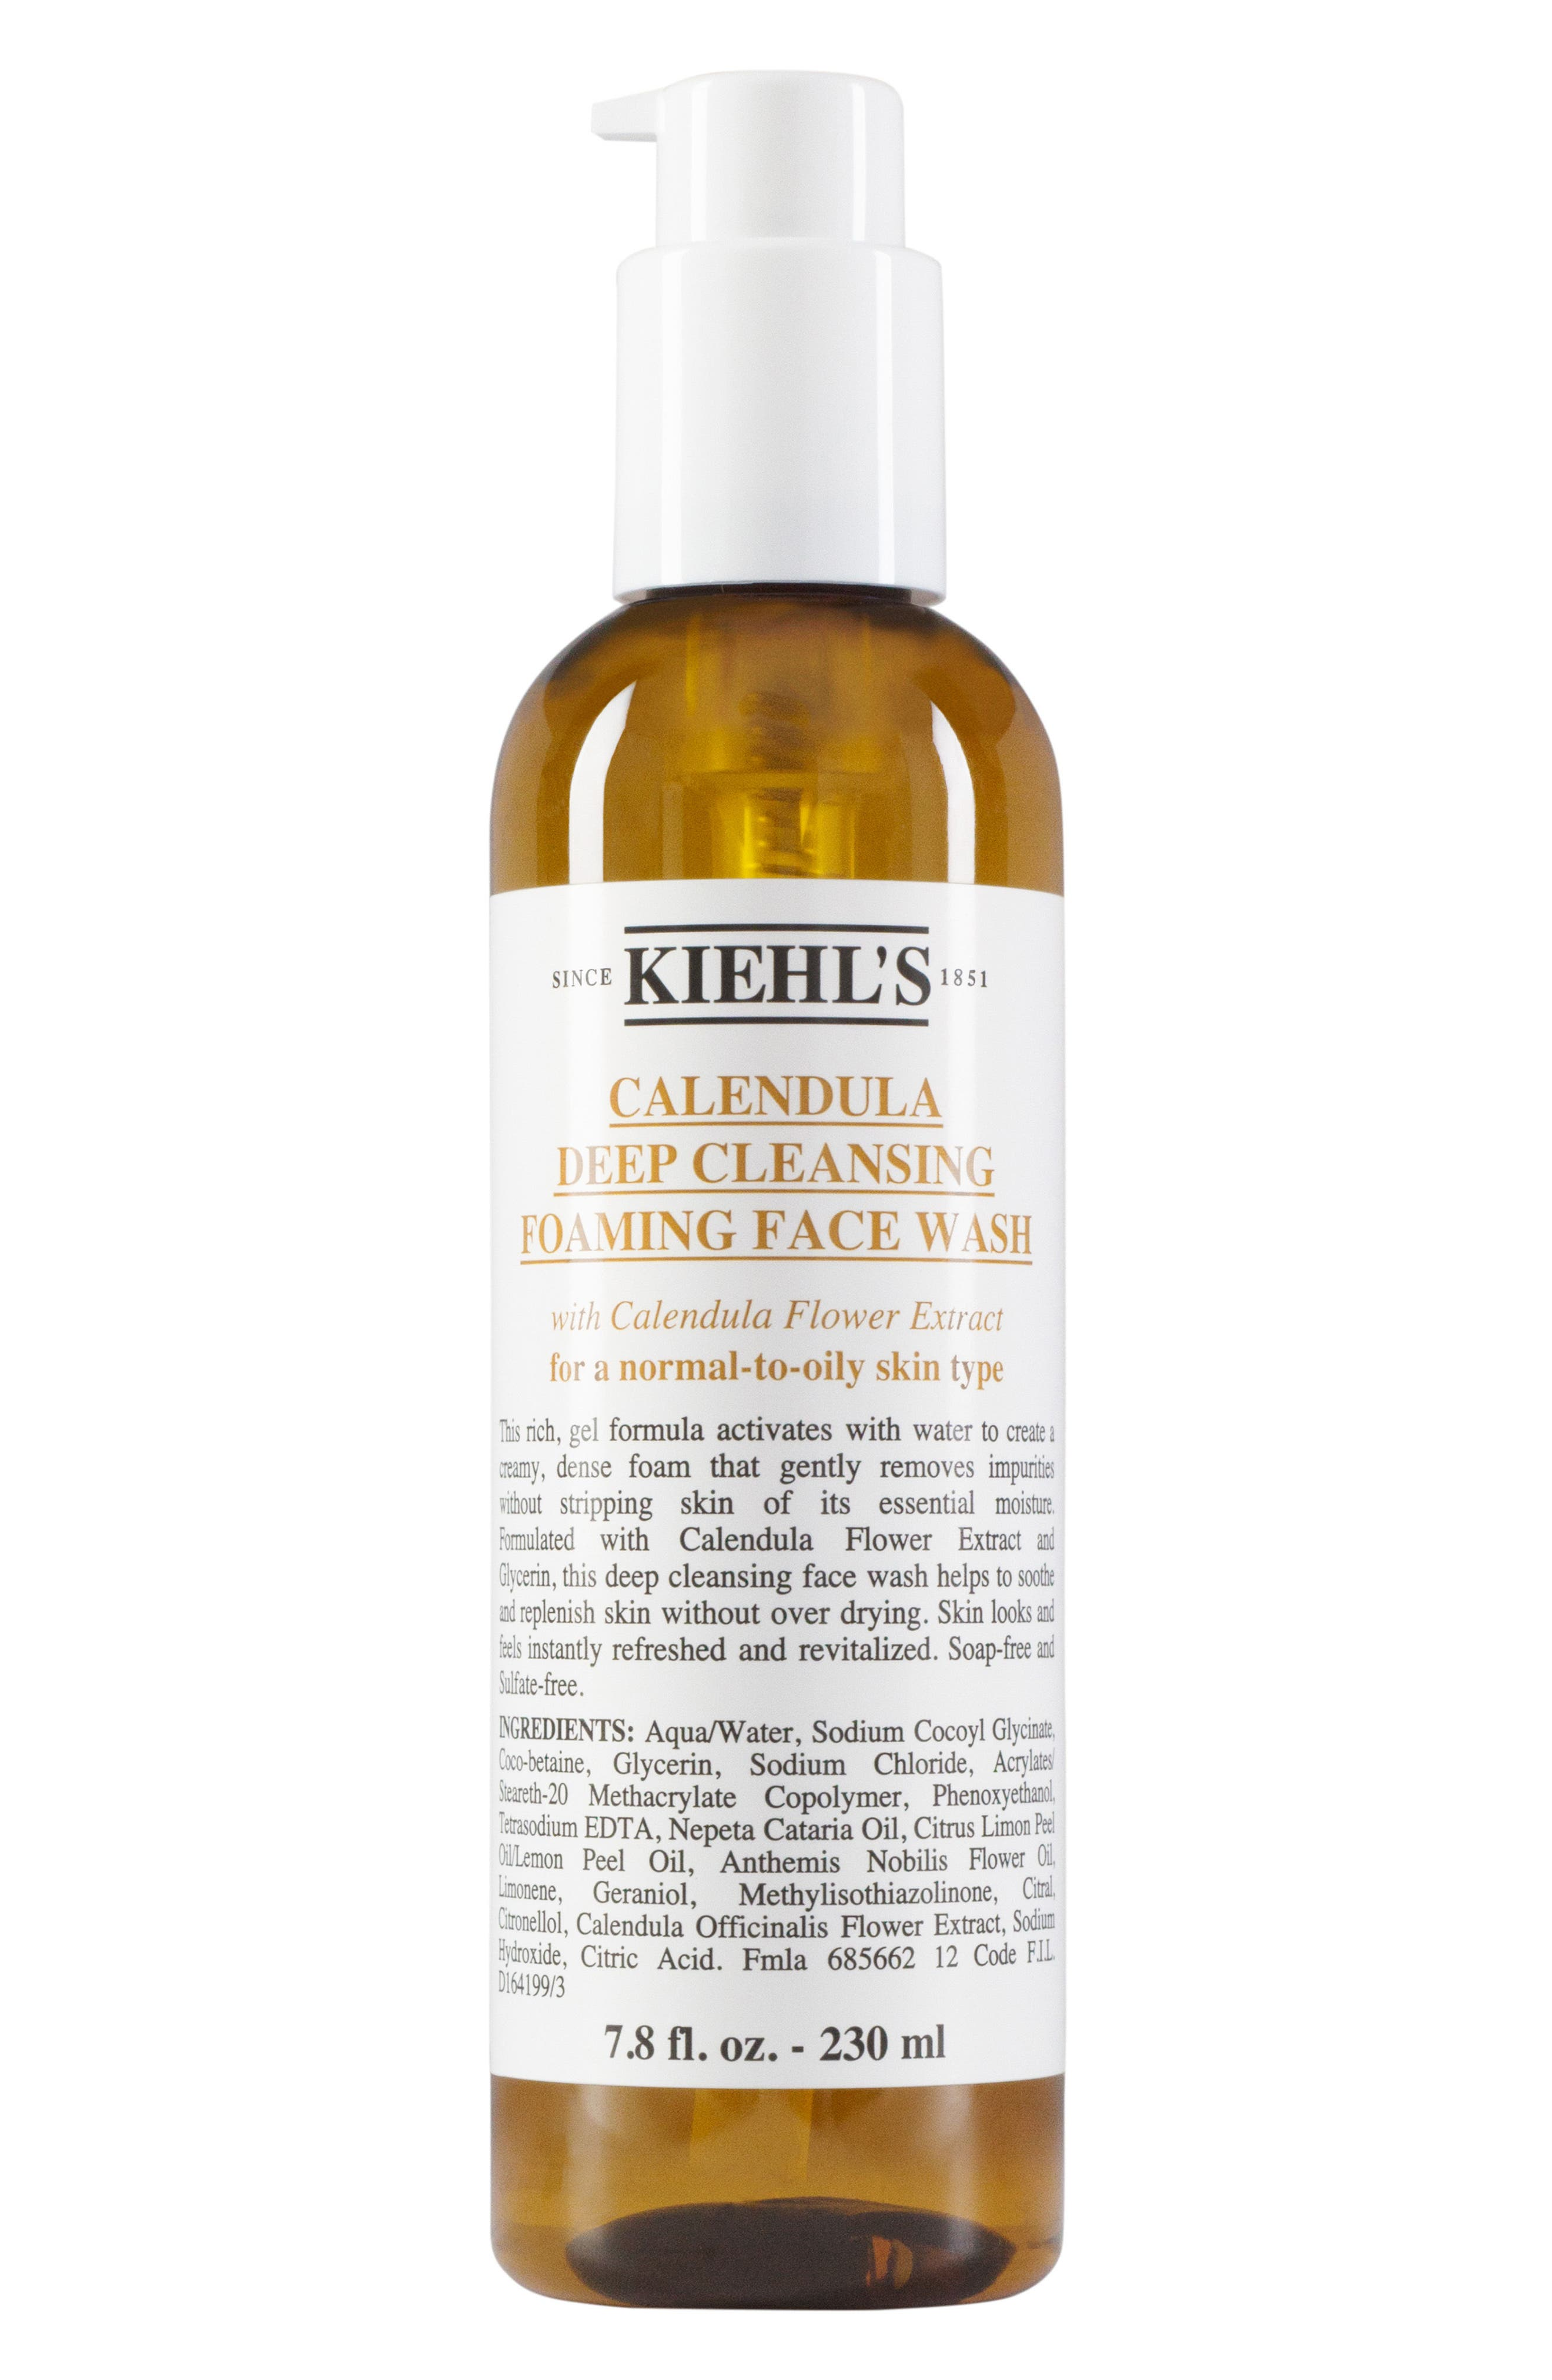 KIEHL'S SINCE 1851,                             Calendula Deep Cleansing Foaming Face Wash for Normal-to-Oily Skin,                             Main thumbnail 1, color,                             NO COLOR